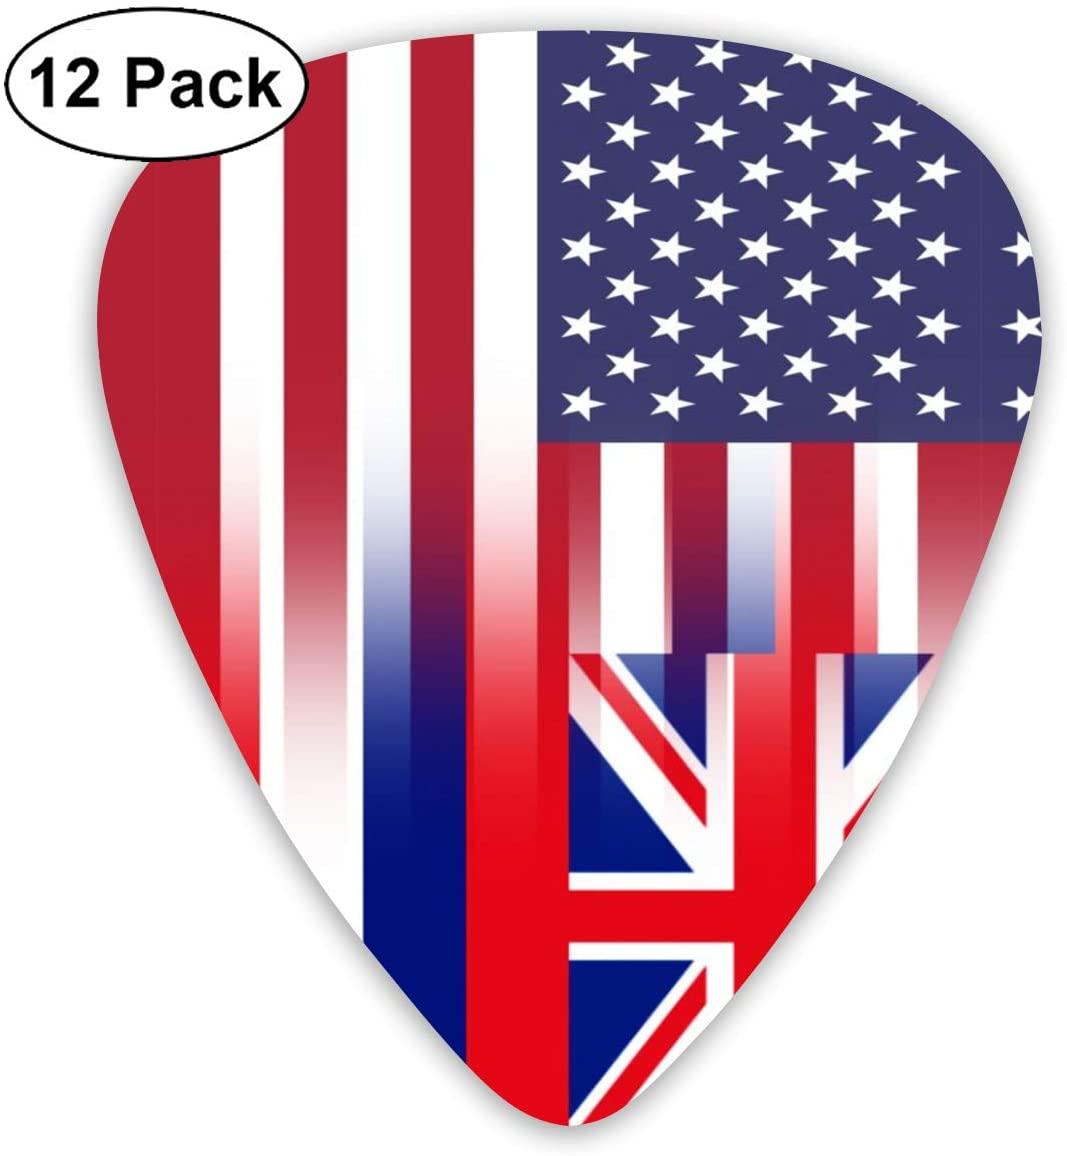 XKAWPC American Hawaii State Flag Cool Guitar Picks 12pcs,Unique Guitar Gift for Your Electric, Acoustic, Or Bass Guitar Includes 0.46, 0.71, 0.96mm